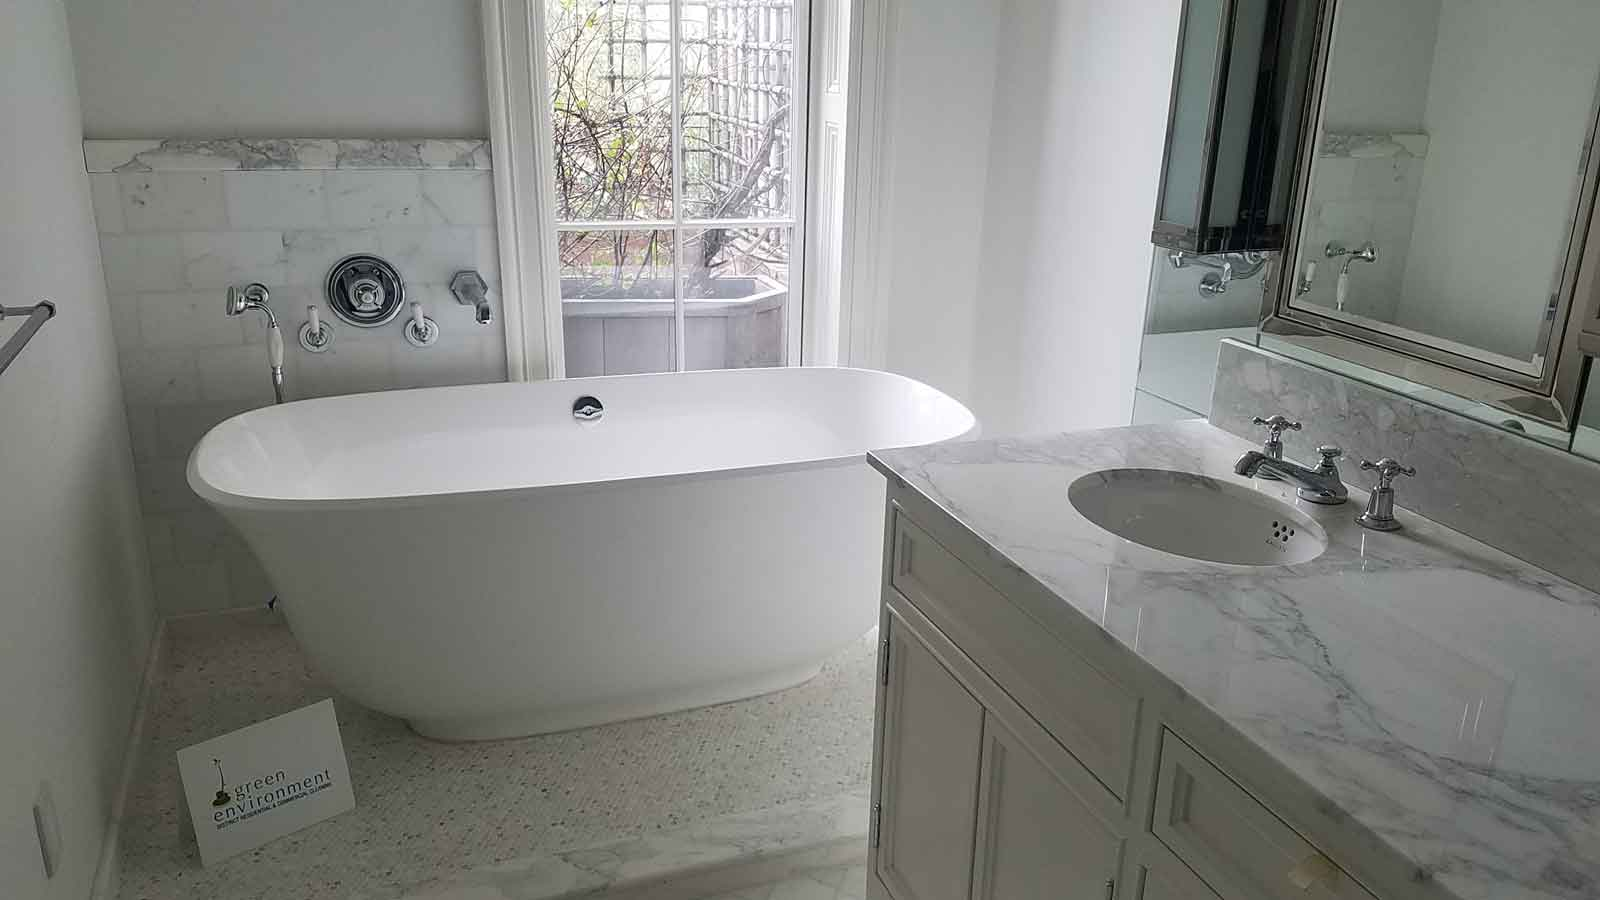 Tub on tile floor with marble wall and counter.